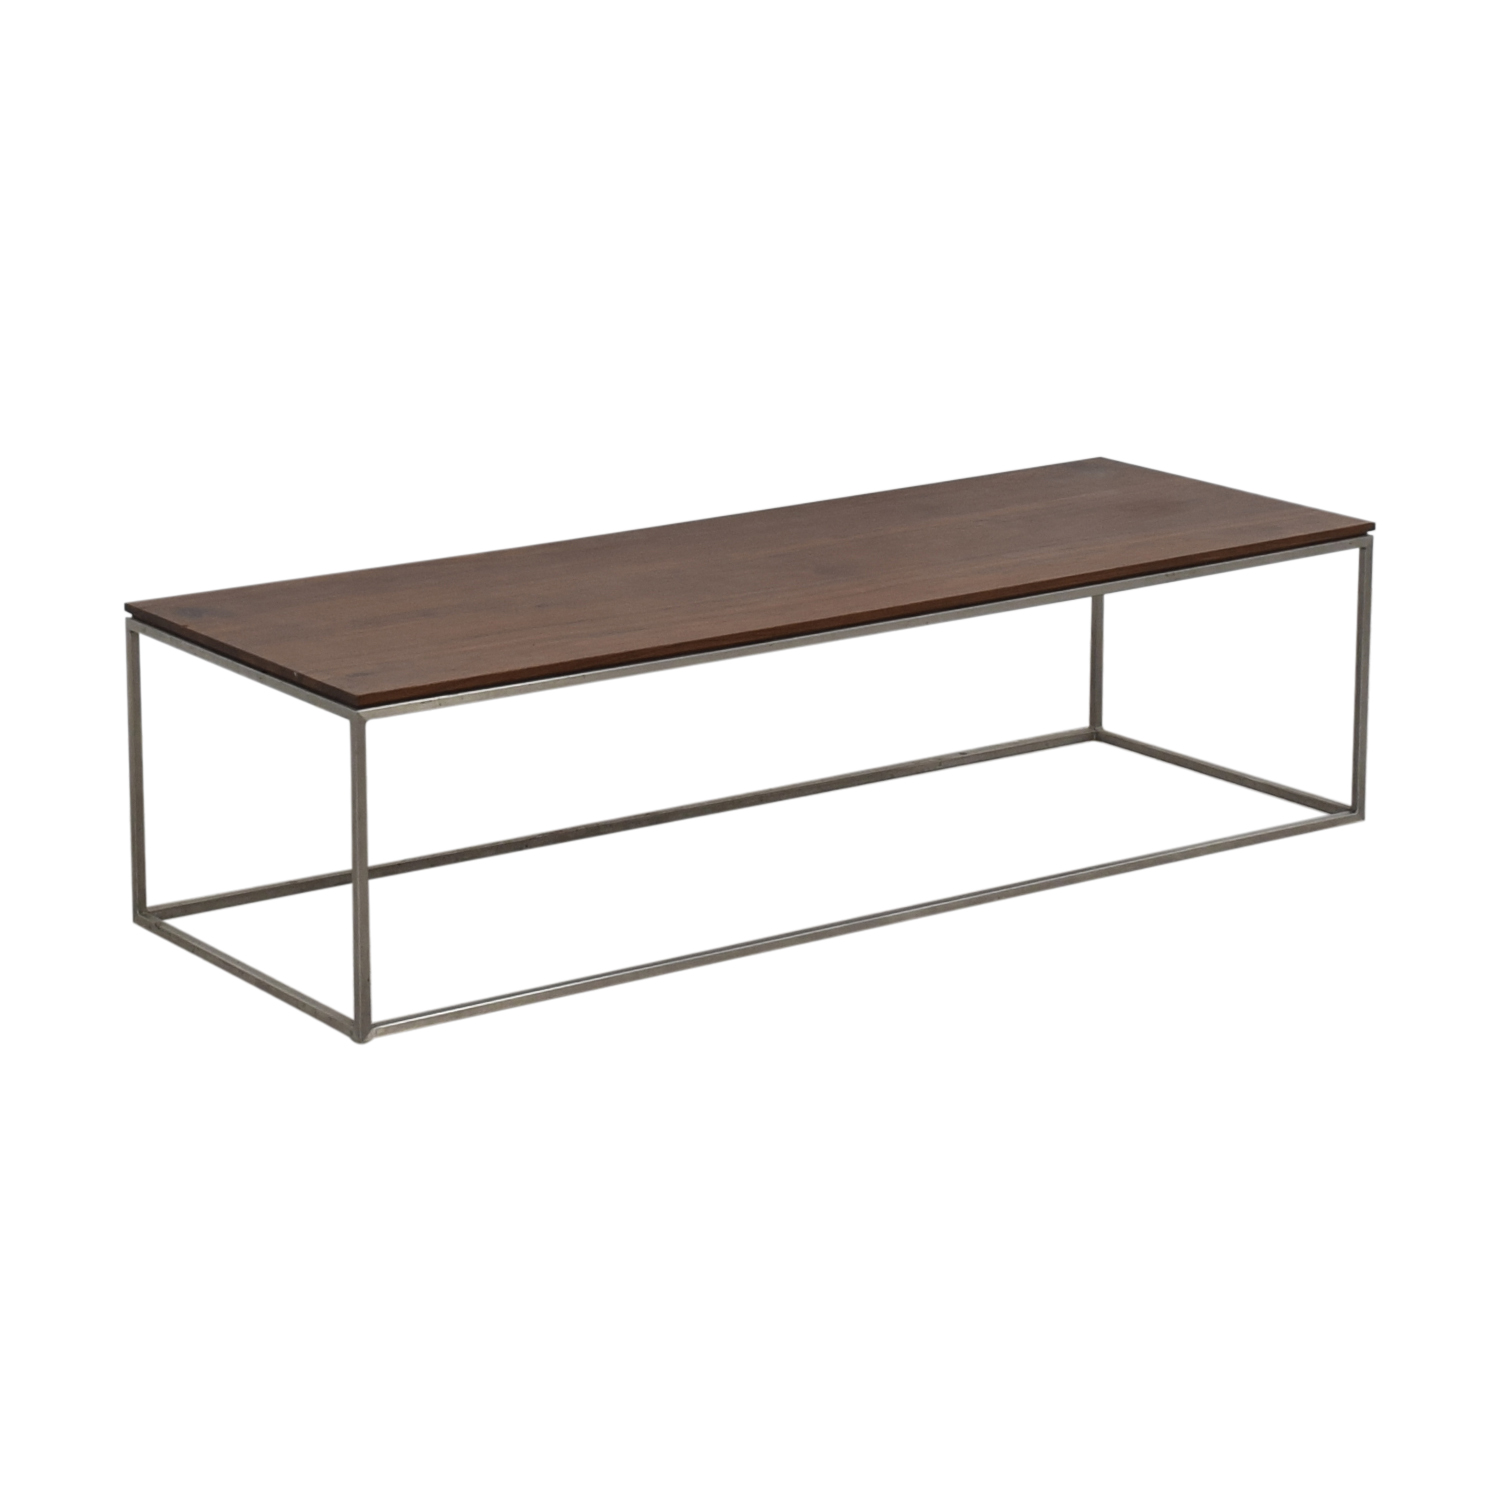 Crate & Barrel Crate & Barrel Frame Coffee Table